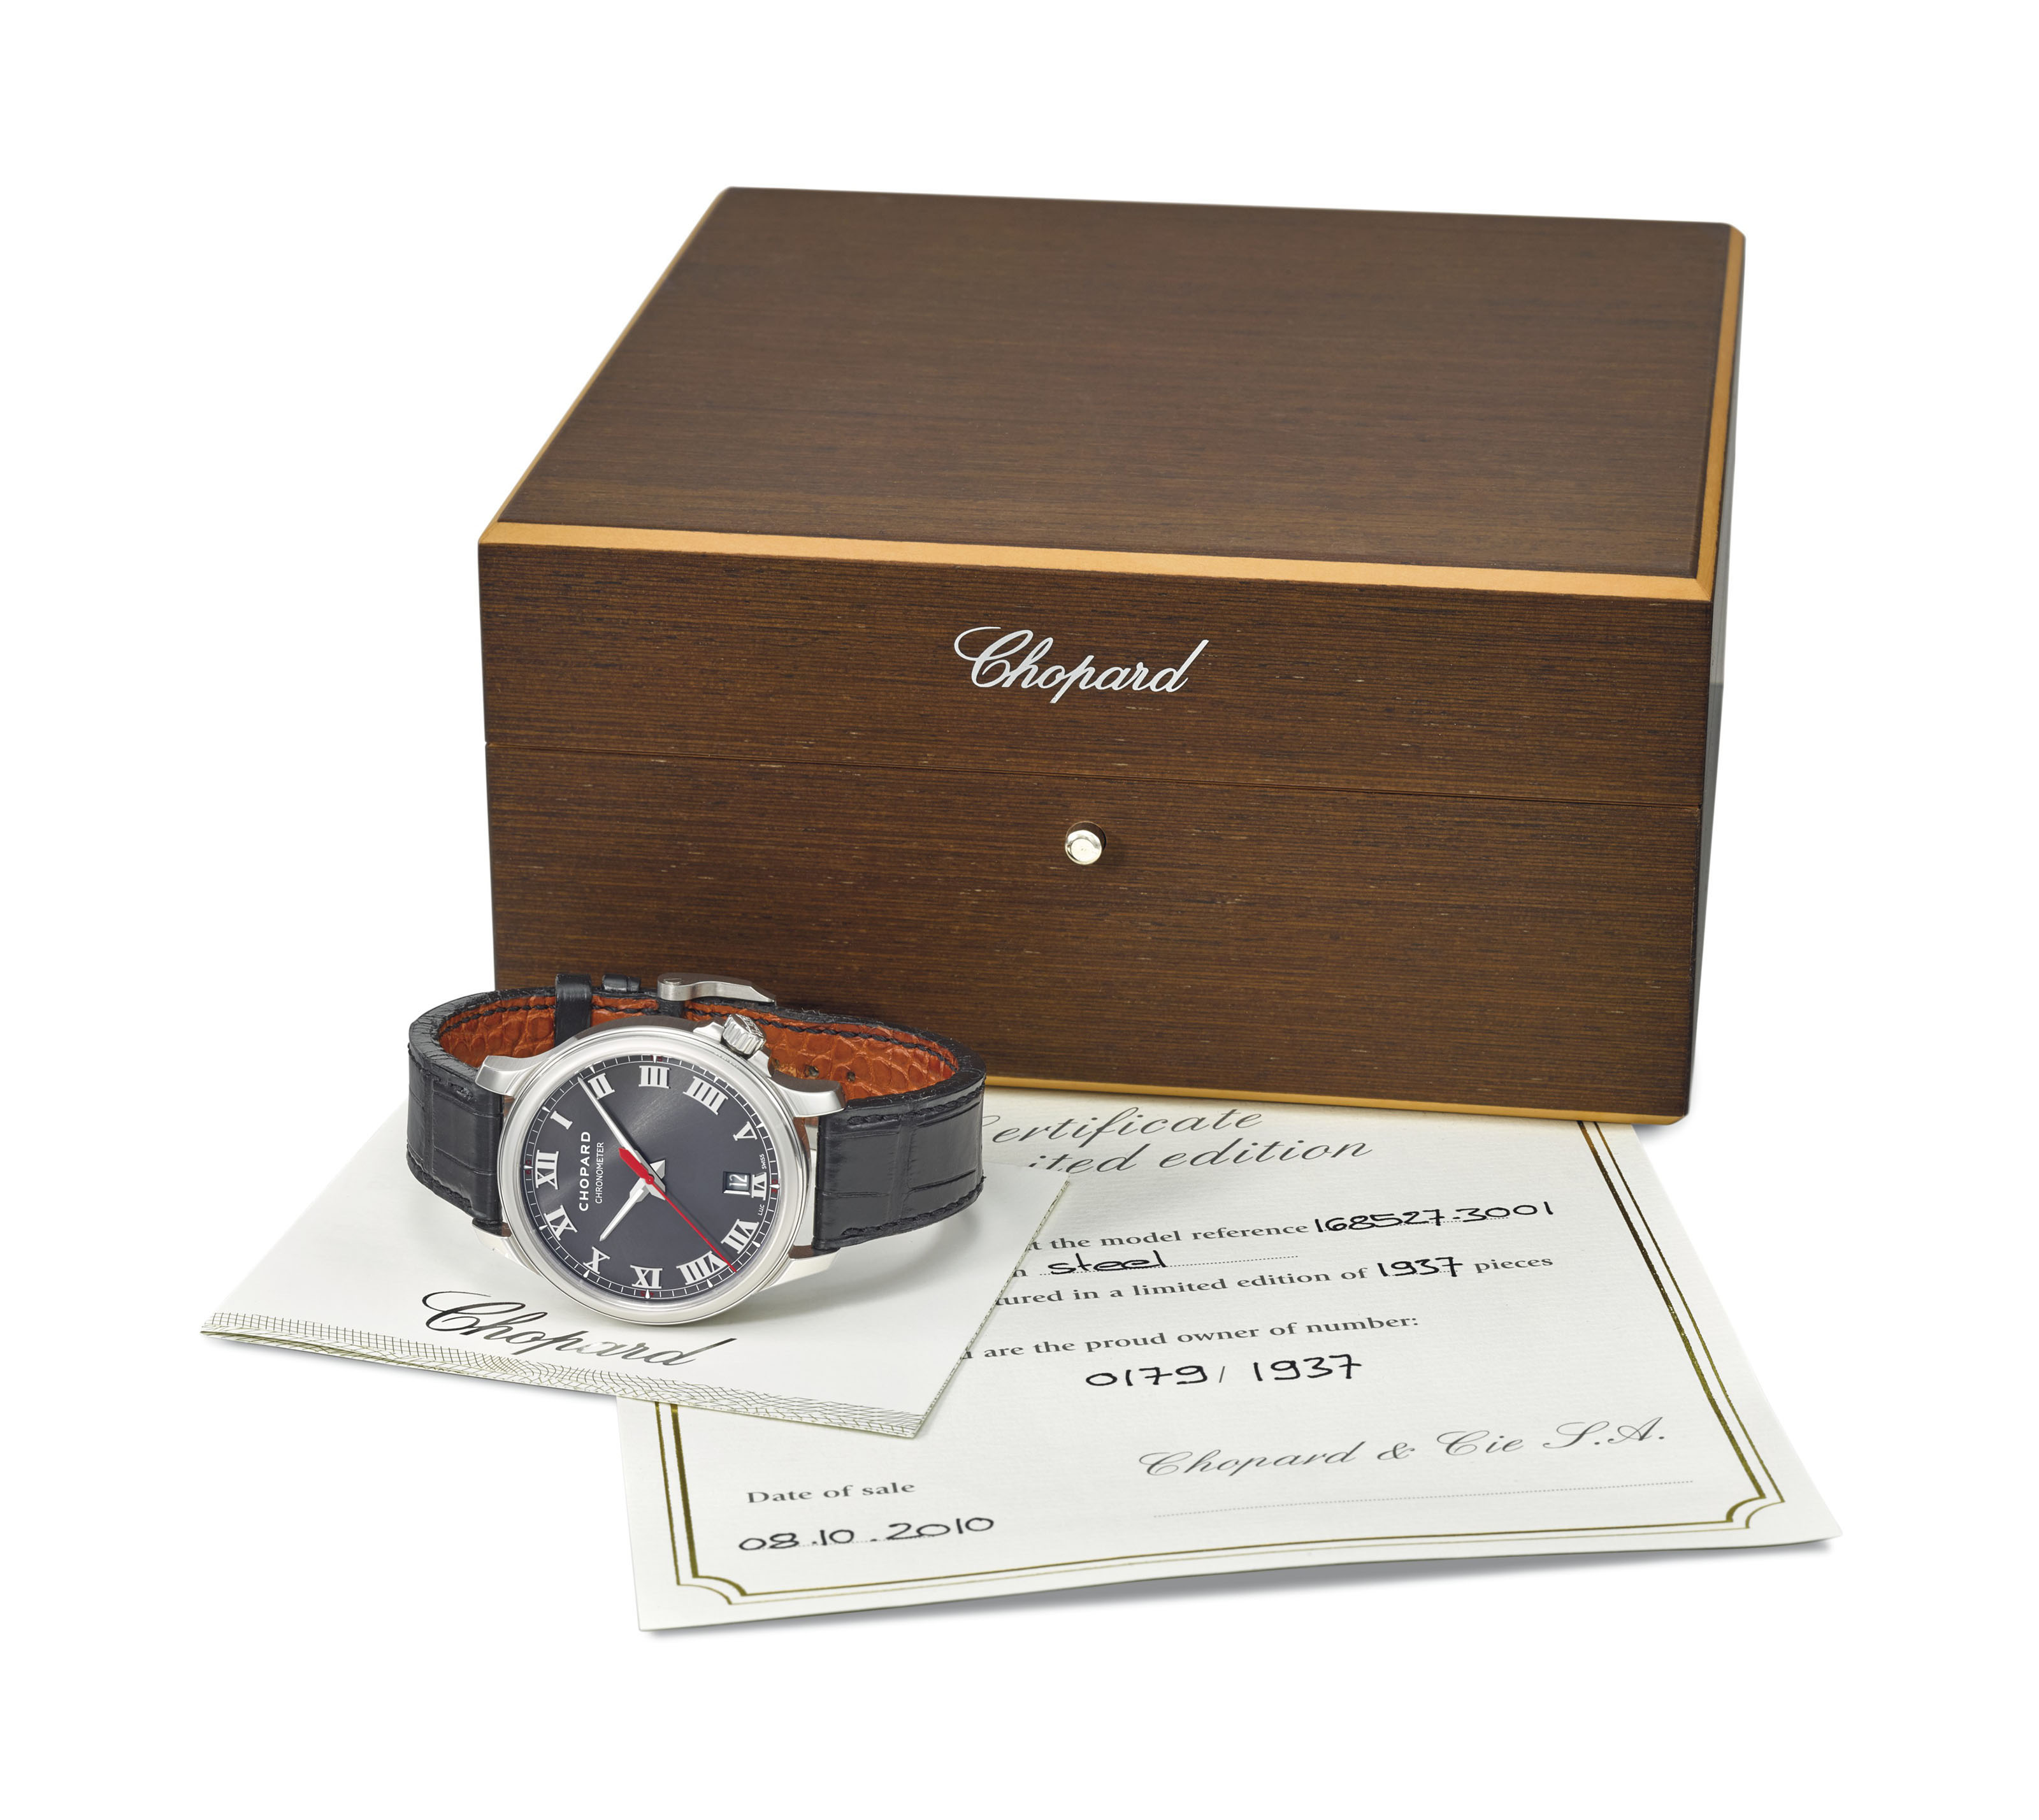 CHOPARD A FINE STAINLESS STEE